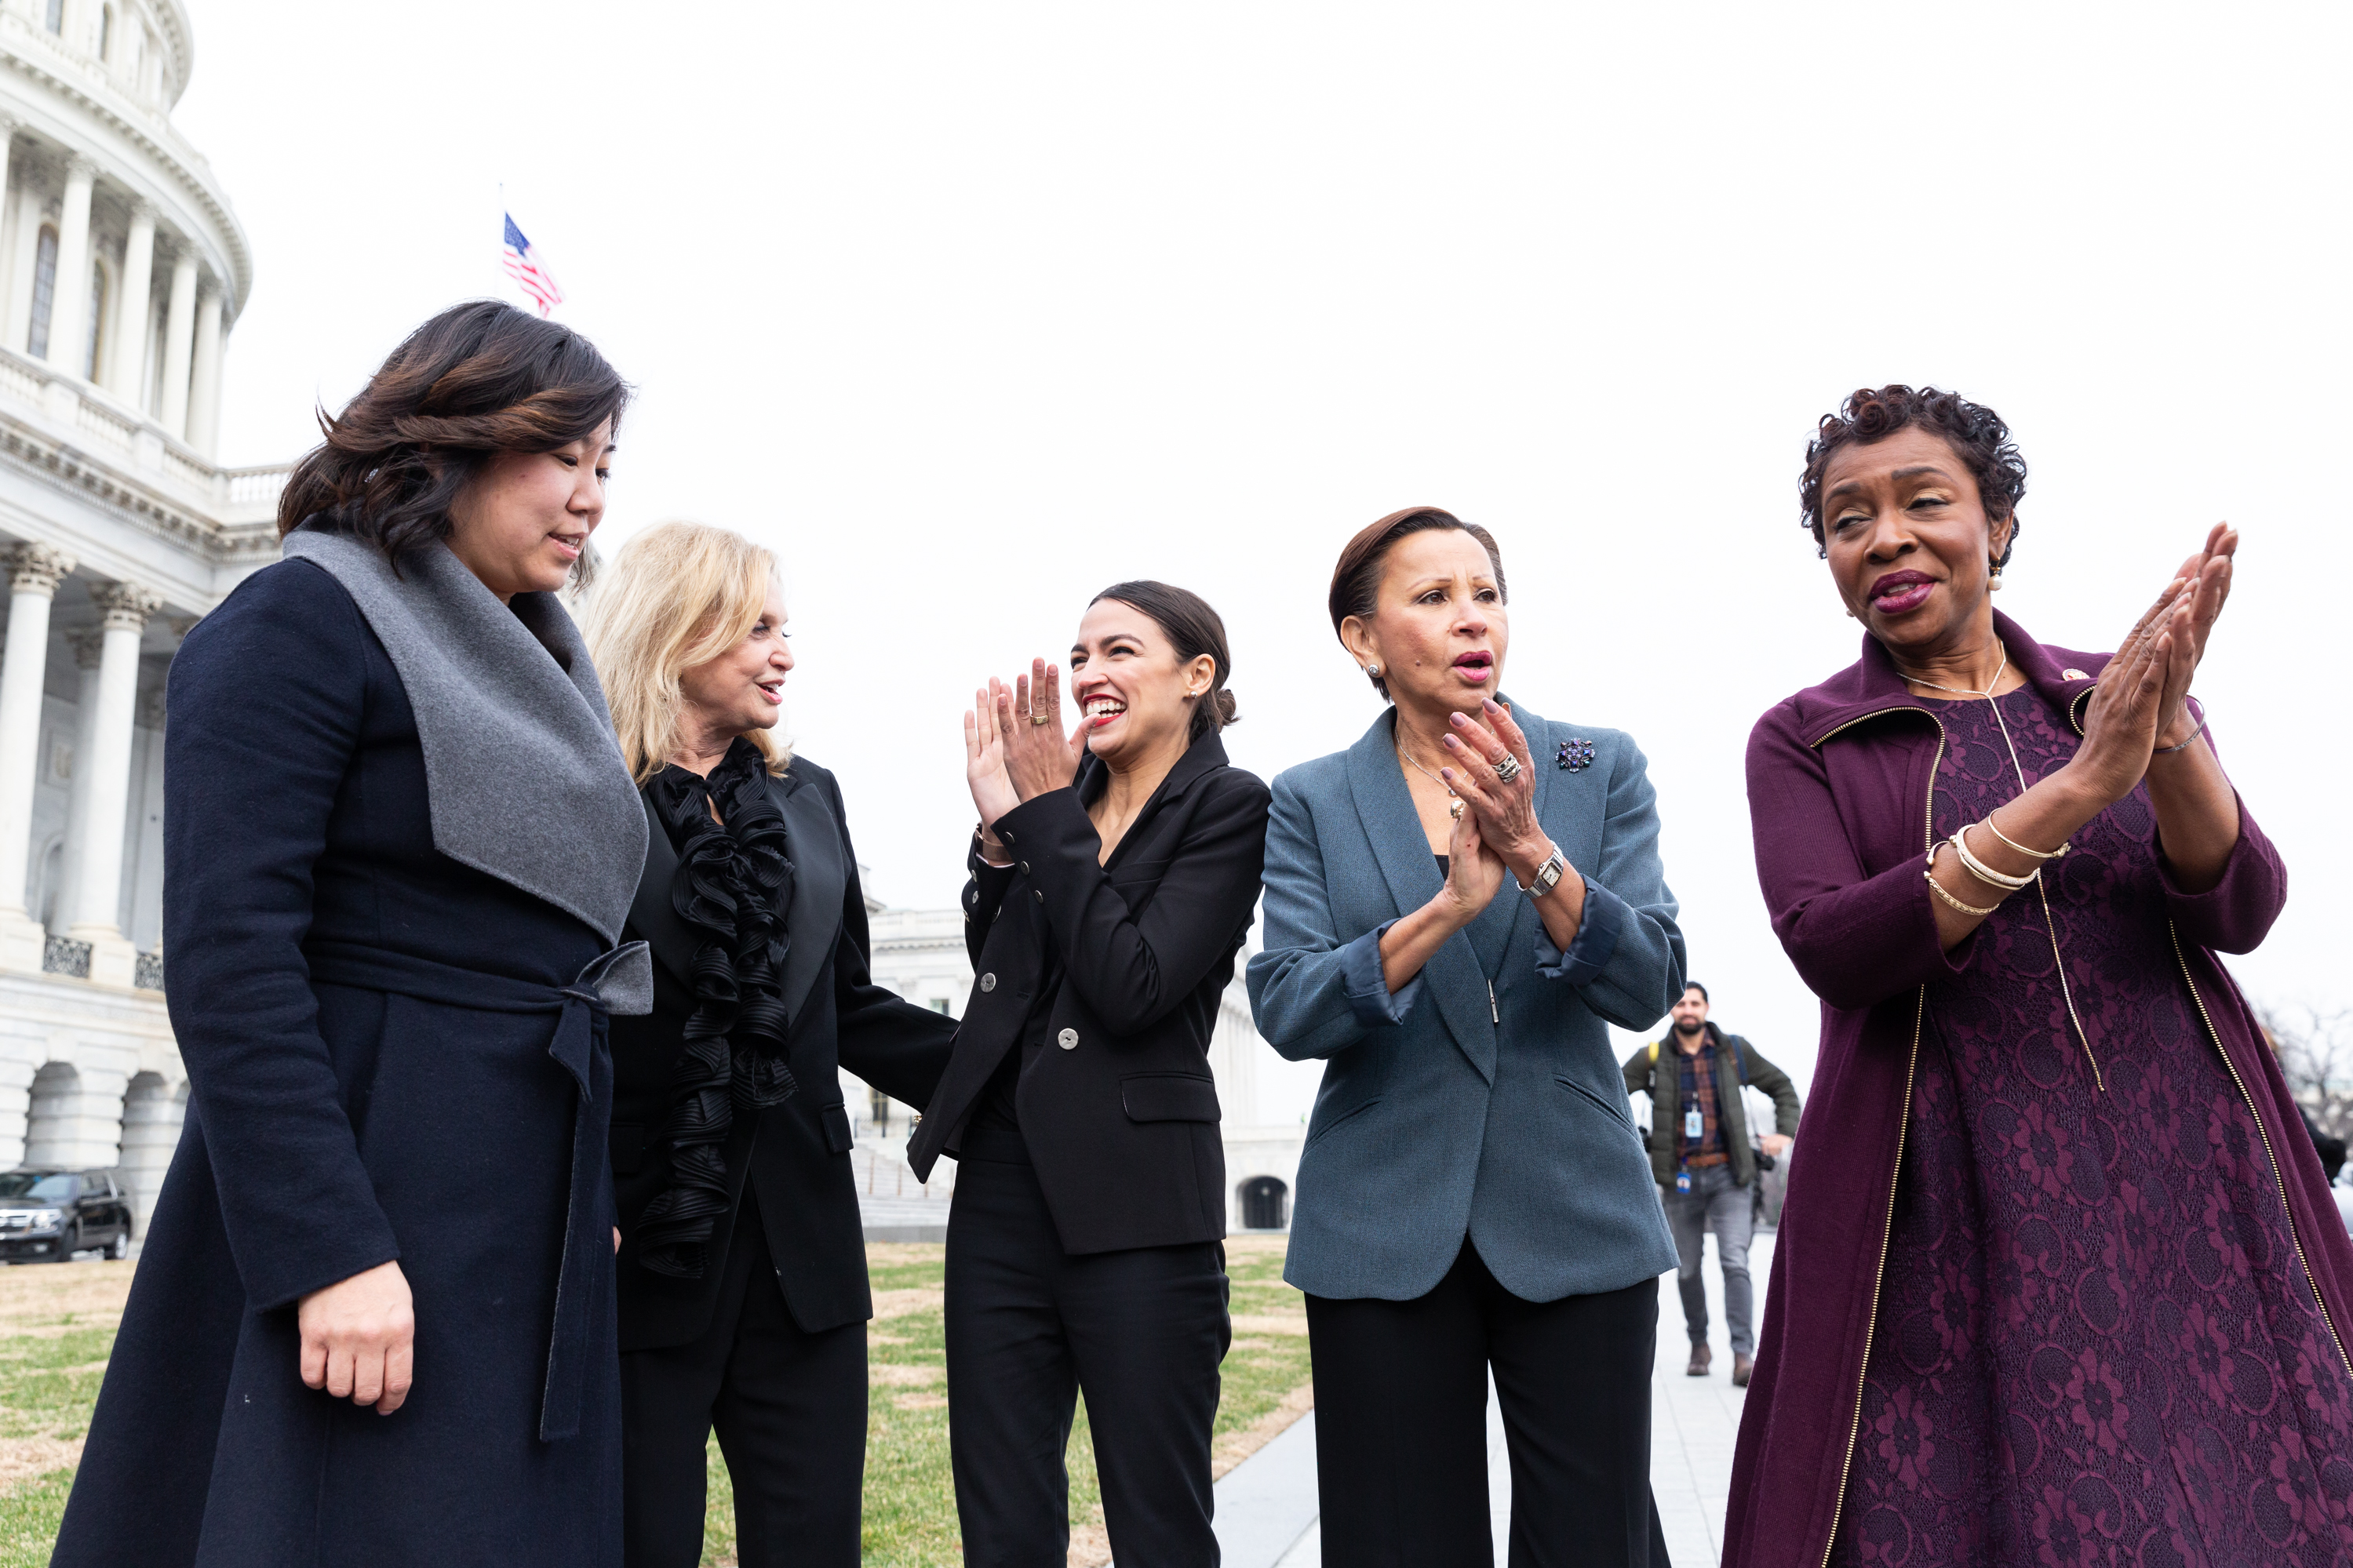 Grace Meng, Carolyn Maloney, Alexandria Ocasio-Cortez, Nydia Velázquez, and Yvette Clarke